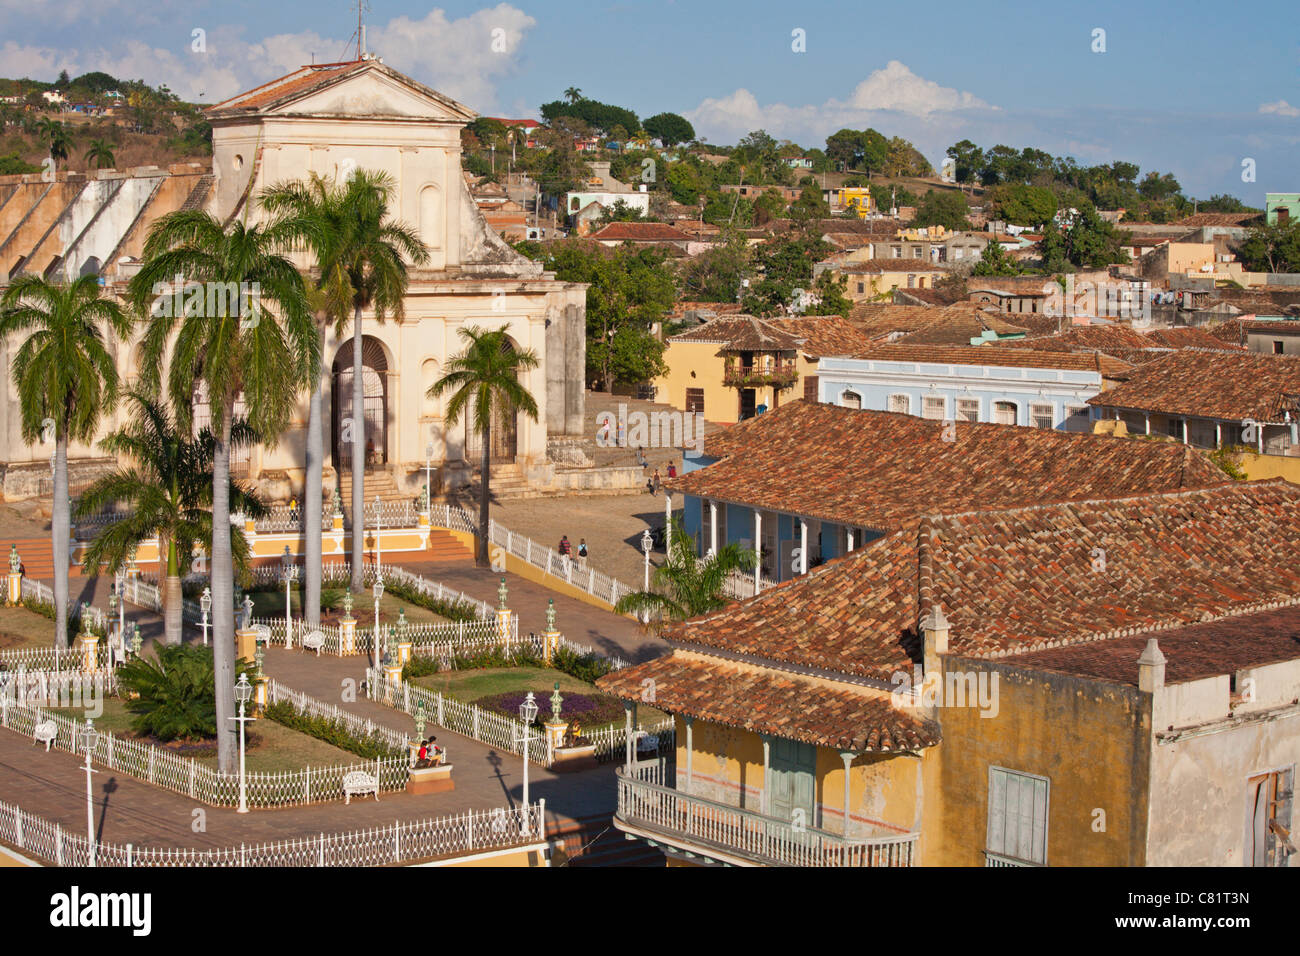 TRINIDAD: PLAZA MAYOR Stock Photo